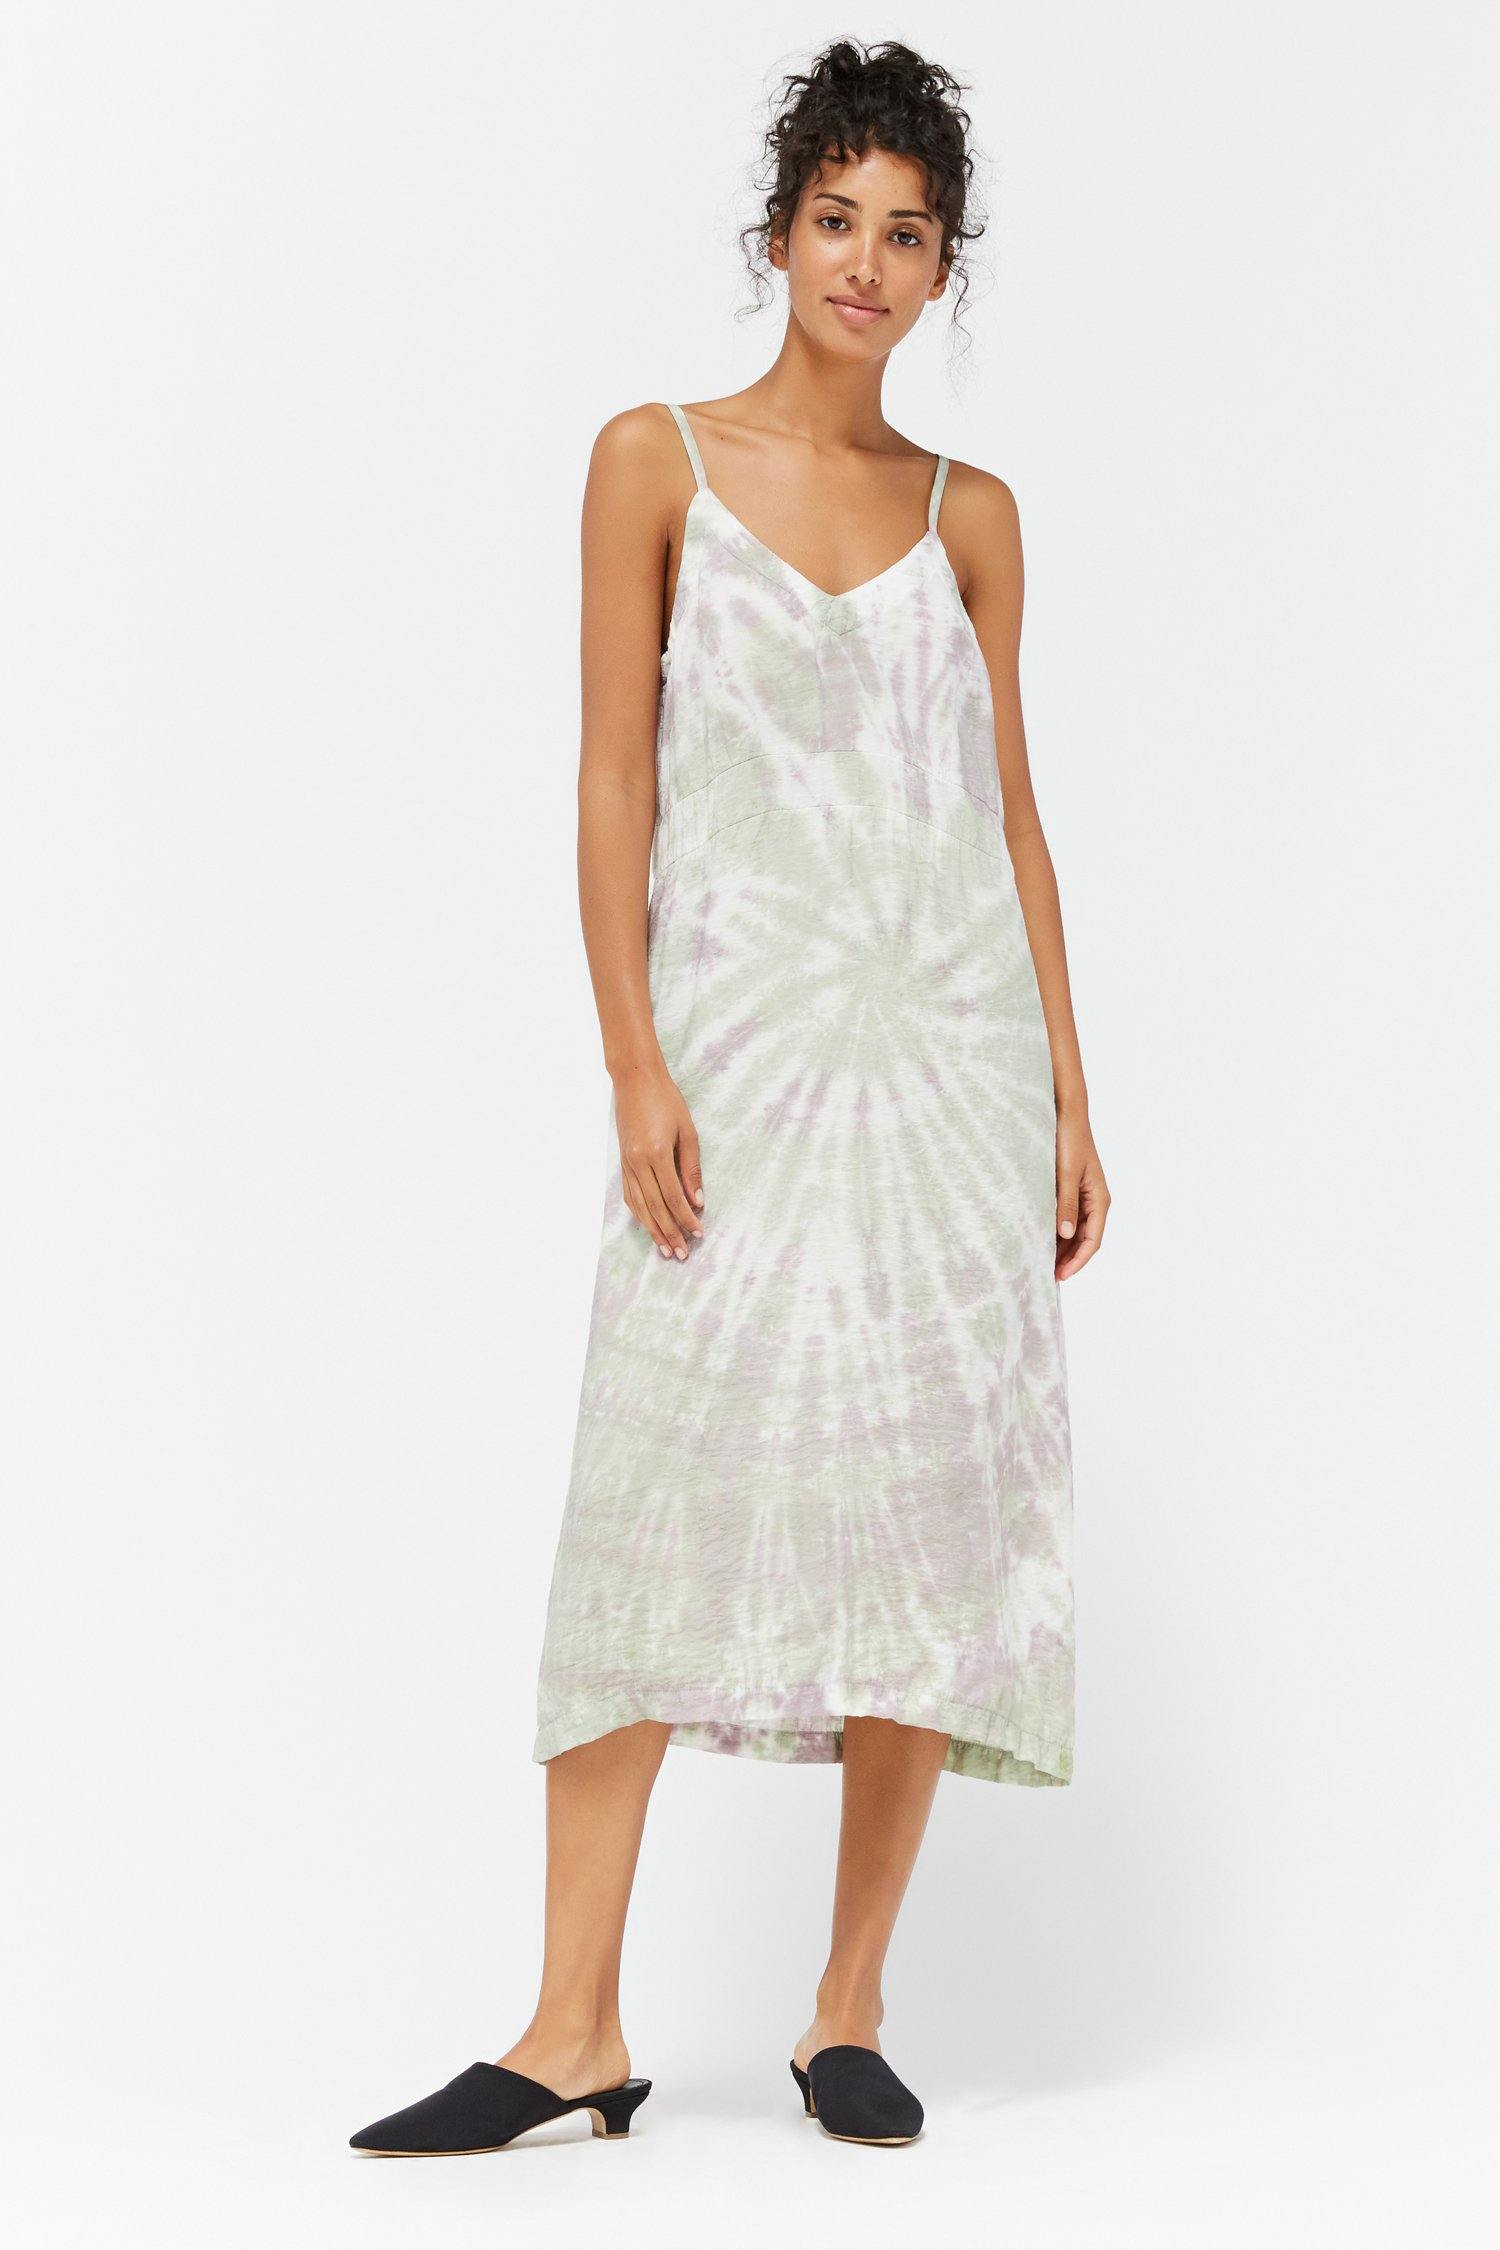 Lacausa Alma Slip Dress - Sugar Plum Swirl